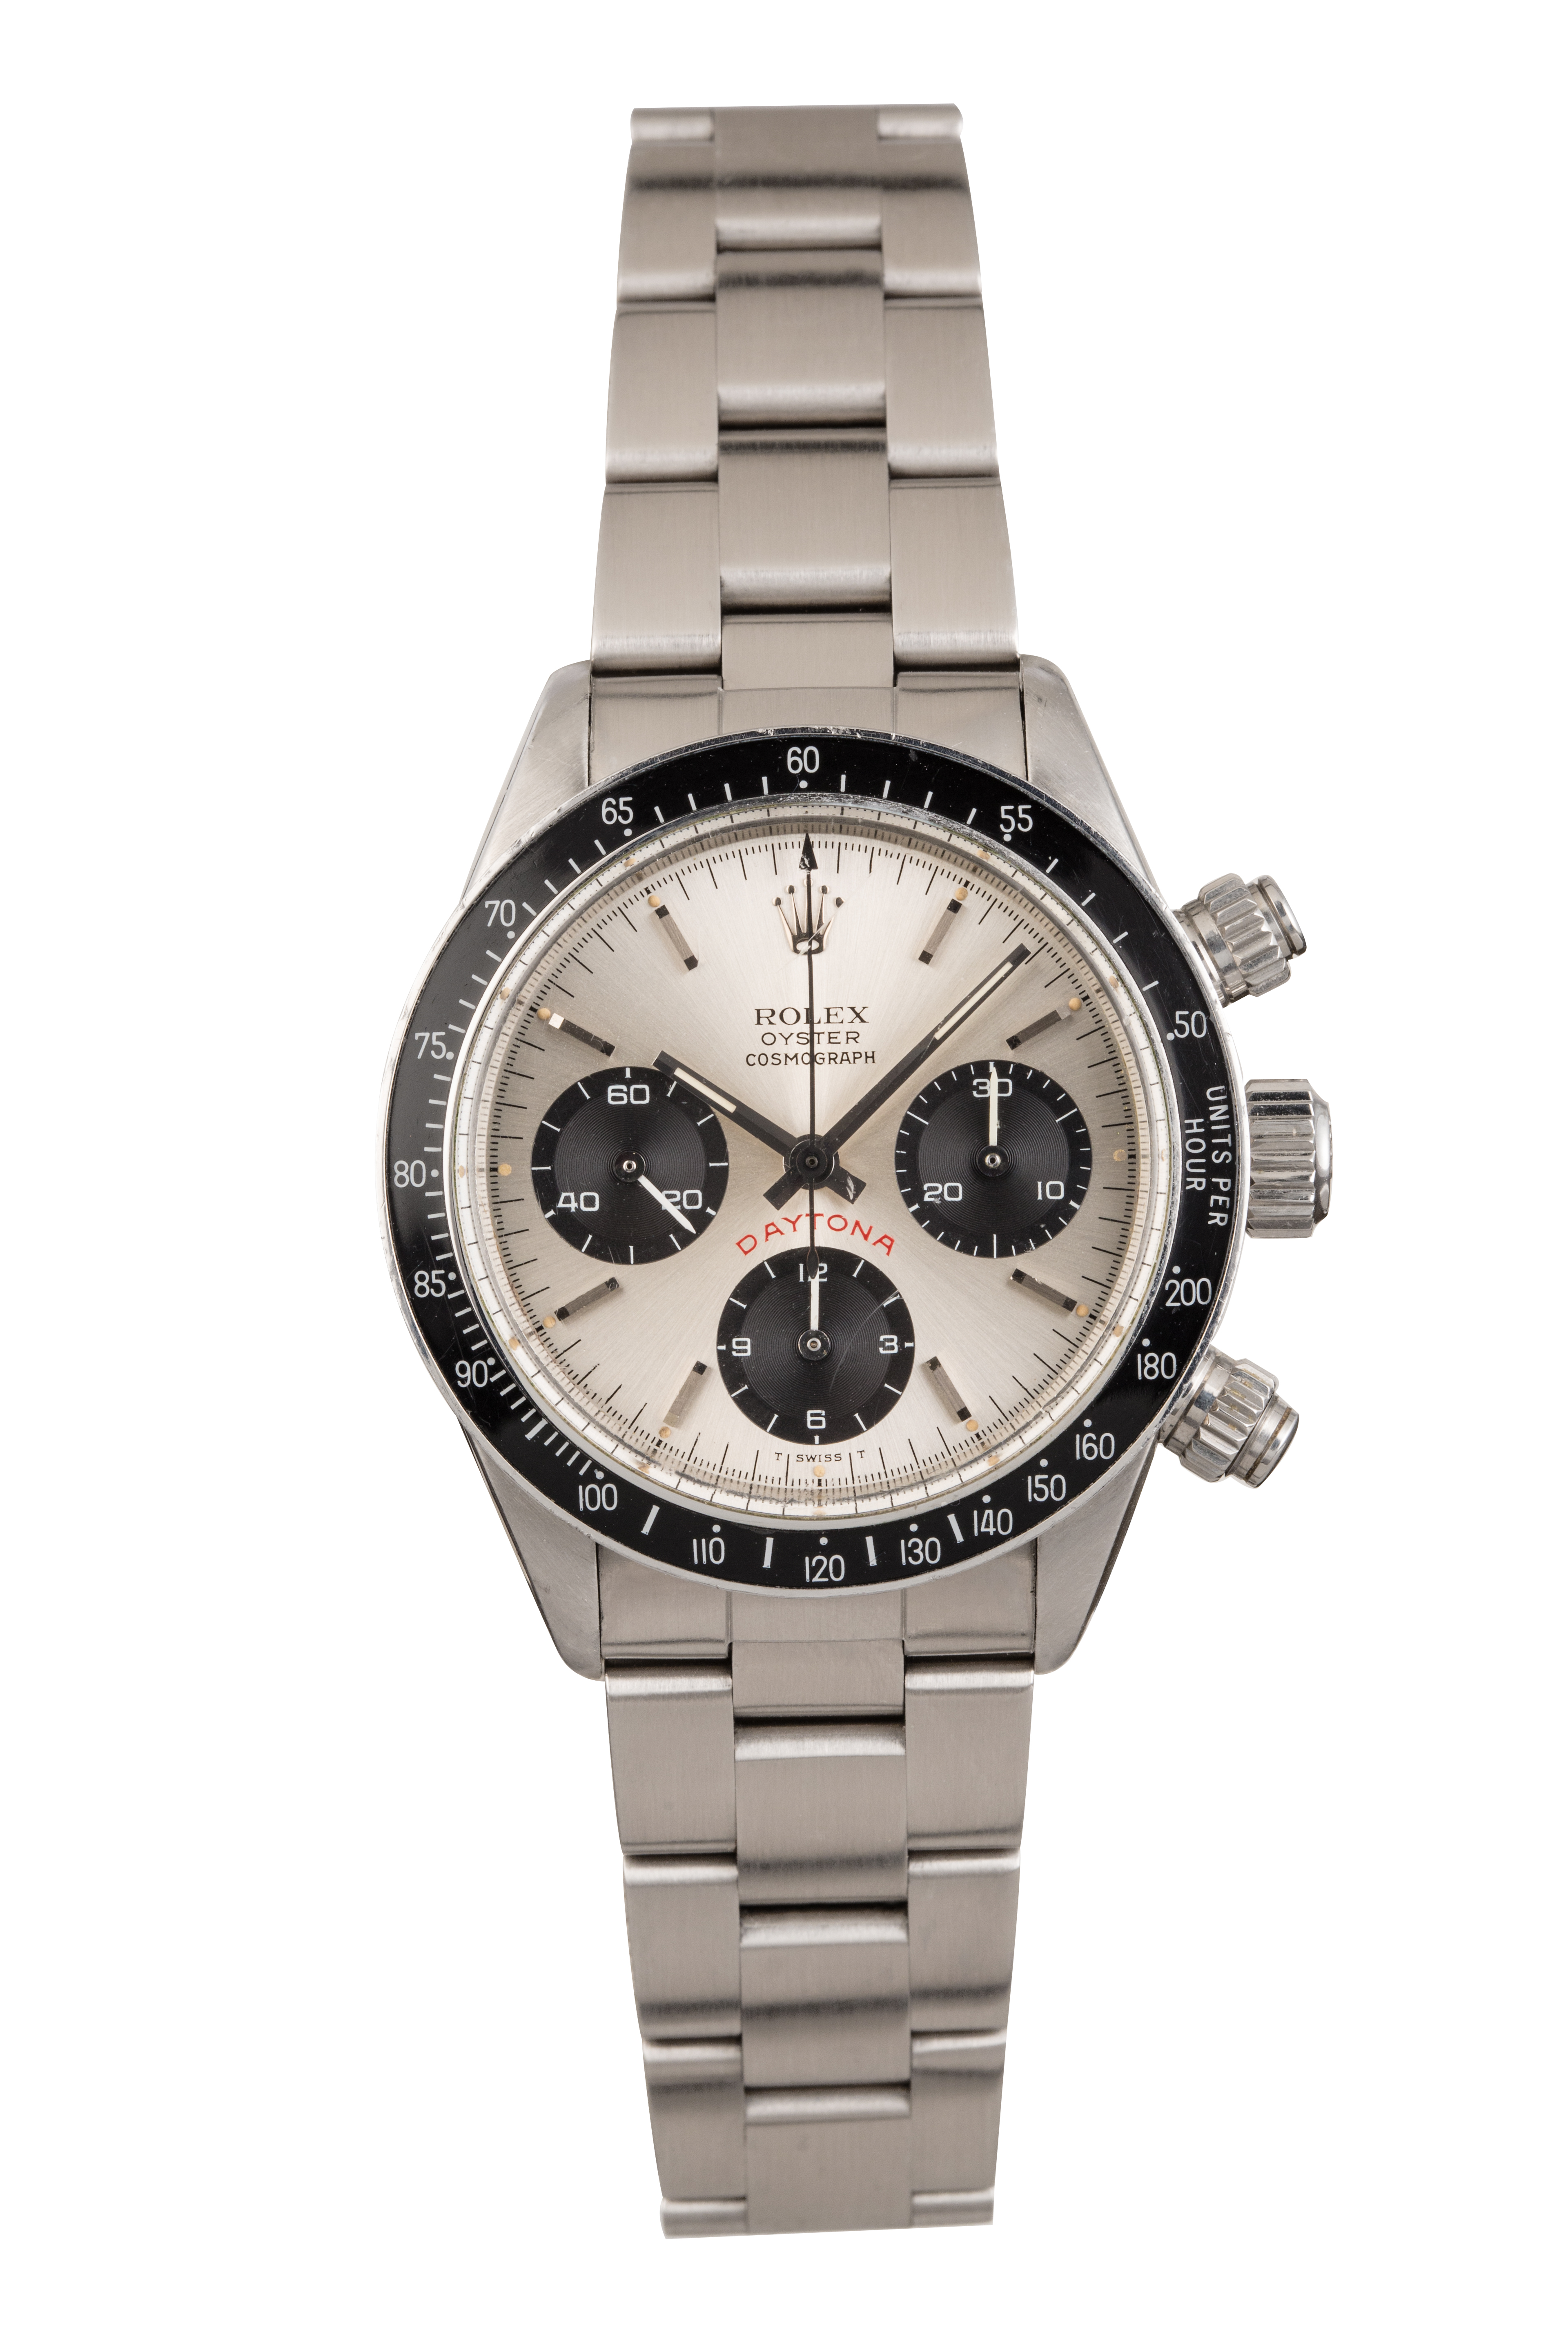 View full screen - View 1 of Lot 12. ROLEX | Daytona, Ref 6263 A Stainless Steel Chronograph Wristwatch with Bracelet 1978.